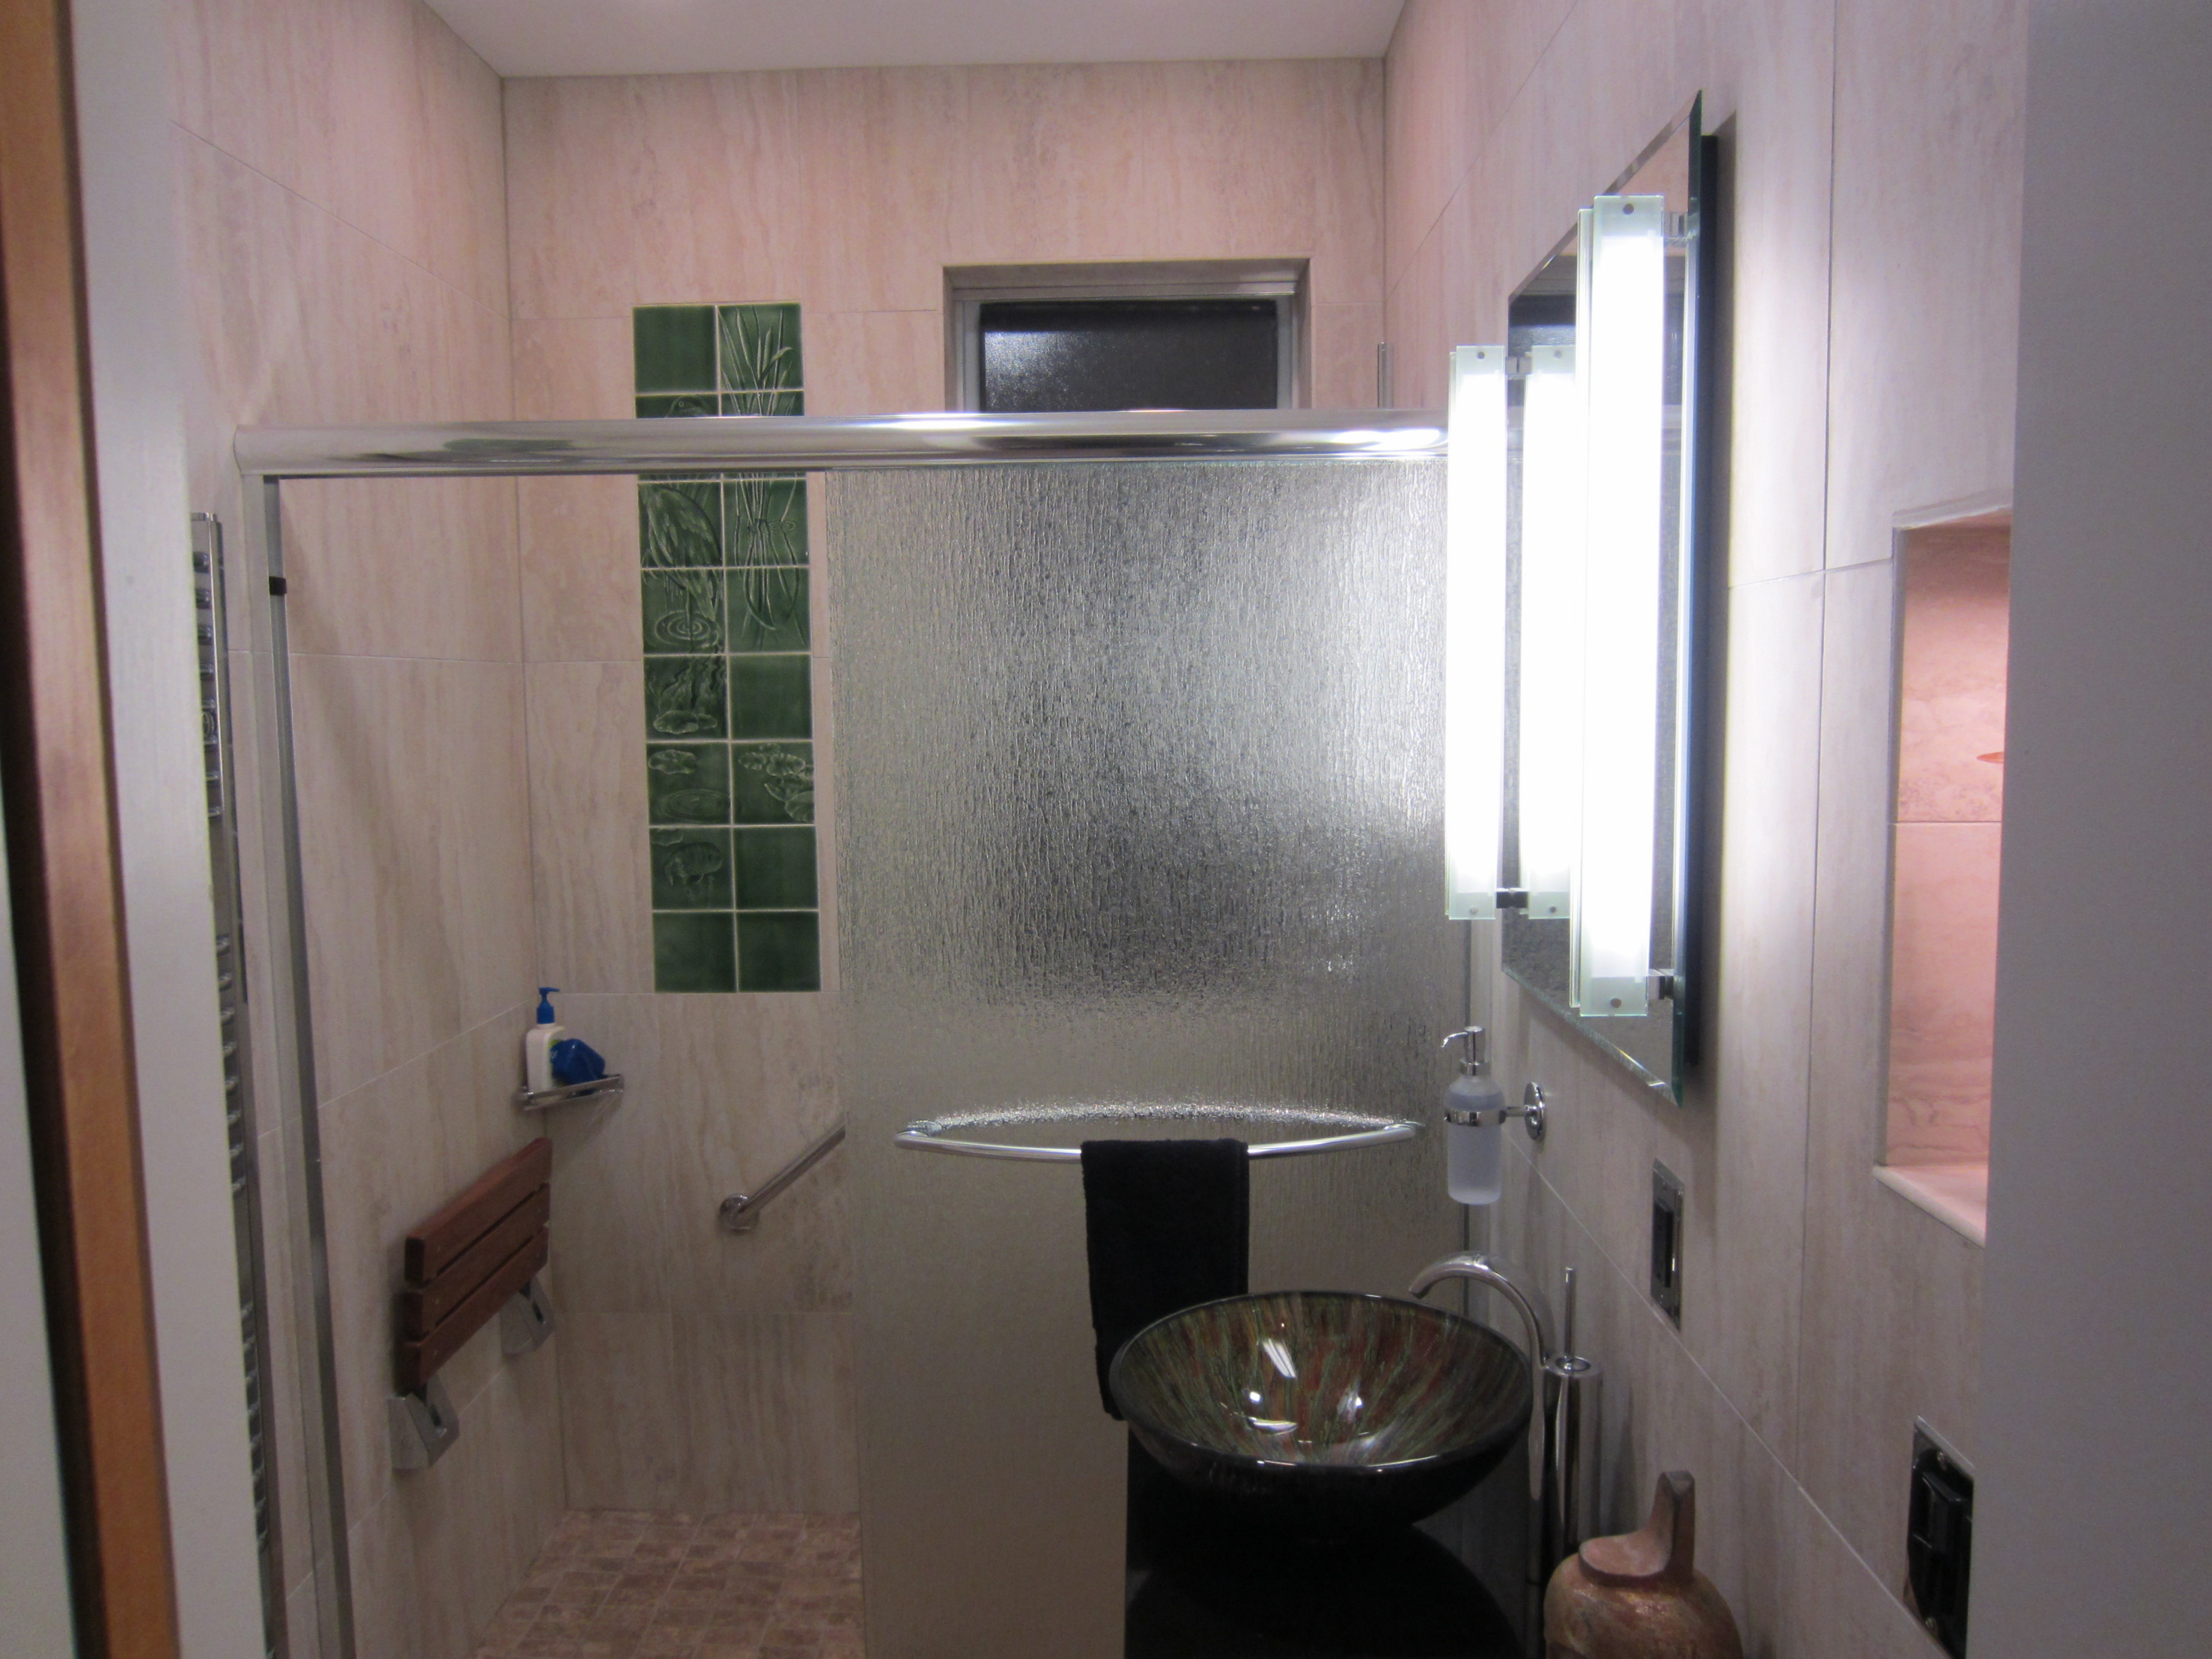 Bathroom Remodeling Boston bathroom remodeling | boston, andover, north andover, lexington